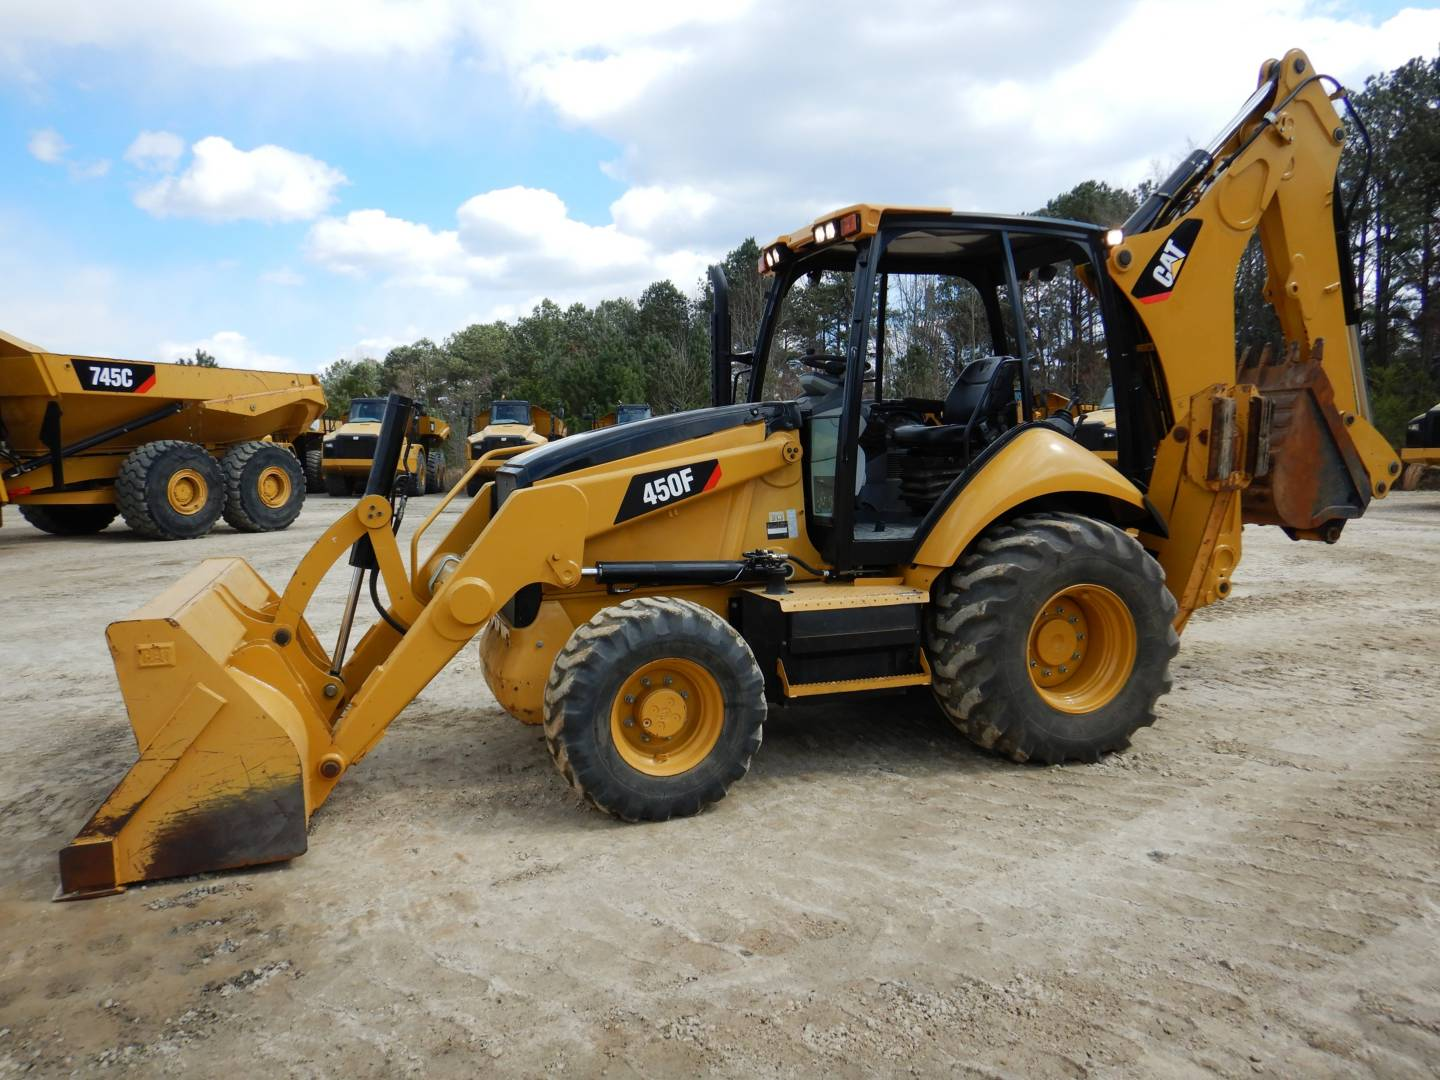 Whayne Walker Cat | New 450 Backhoe Loader for Sale - Whayne Walker Cat